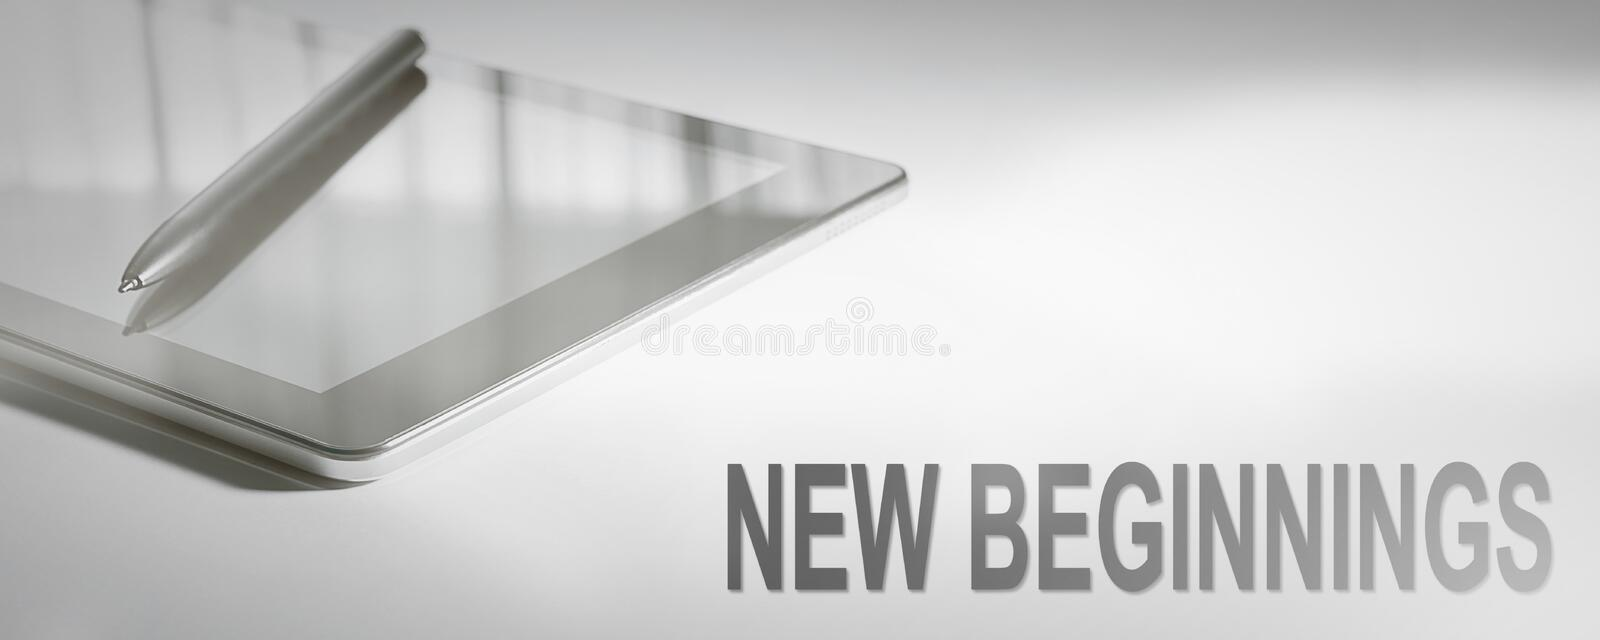 NEW BEGINNINGS Business Concept Digital Technology. Graphic Concept. Business Concept royalty free stock photography